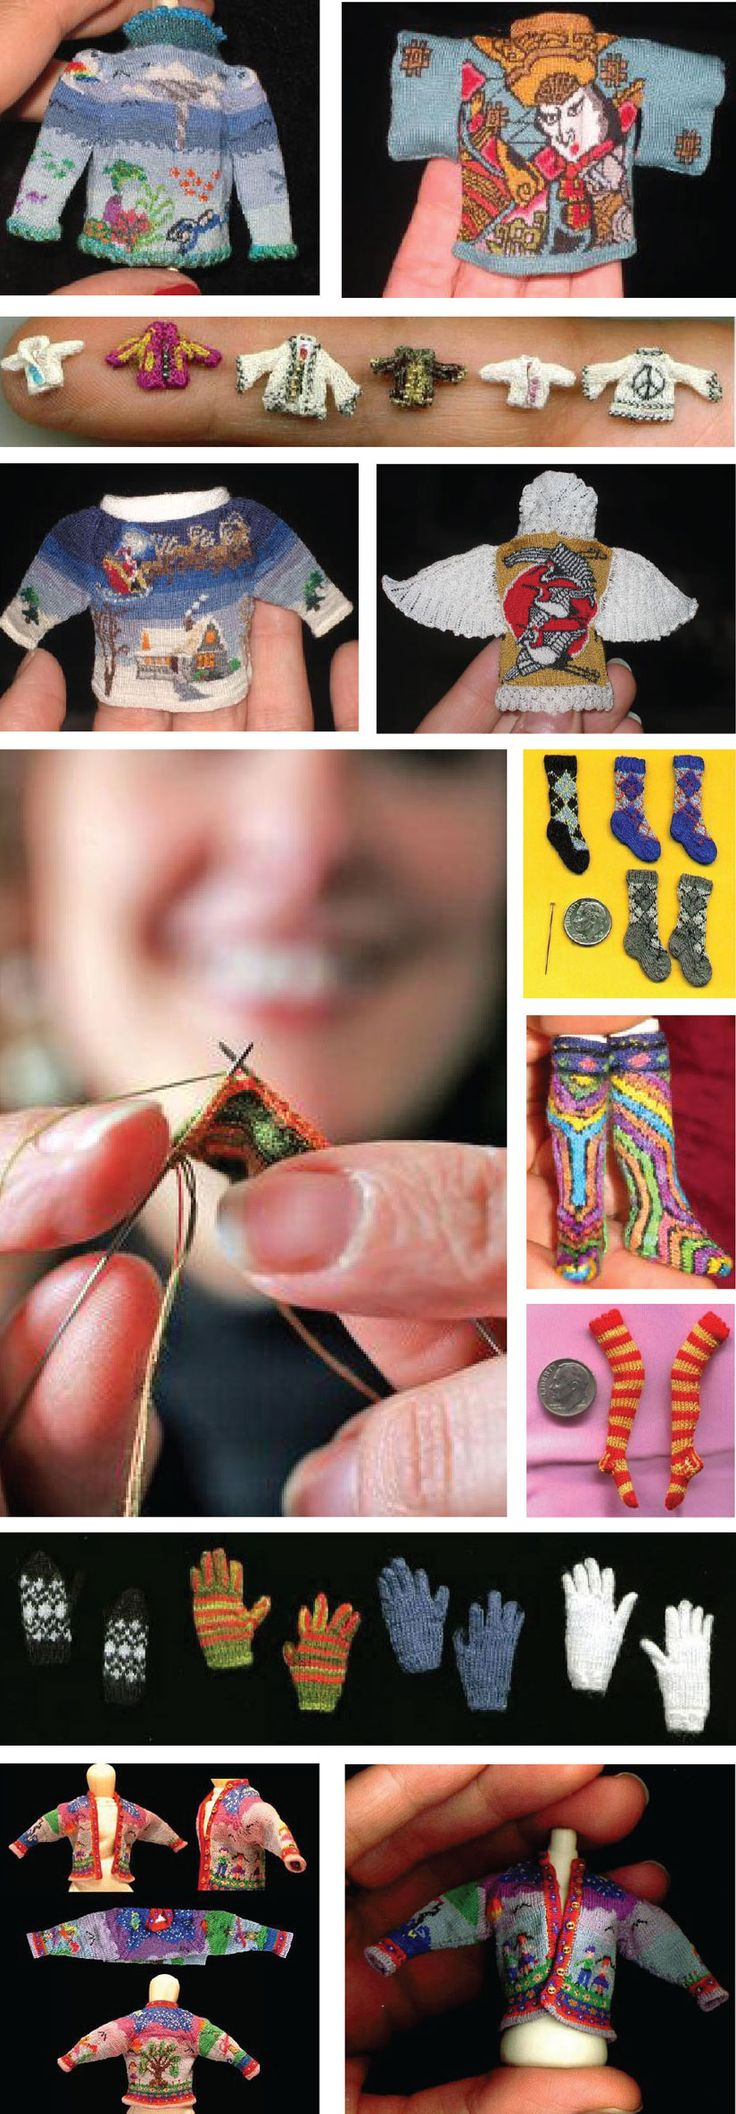 An example of extreme knitting are these miniature works of Indiana-based knitter Althea Crome of Bugknits. She knits these tiny objects with silk sewing threads and uses surgical wires for needles…